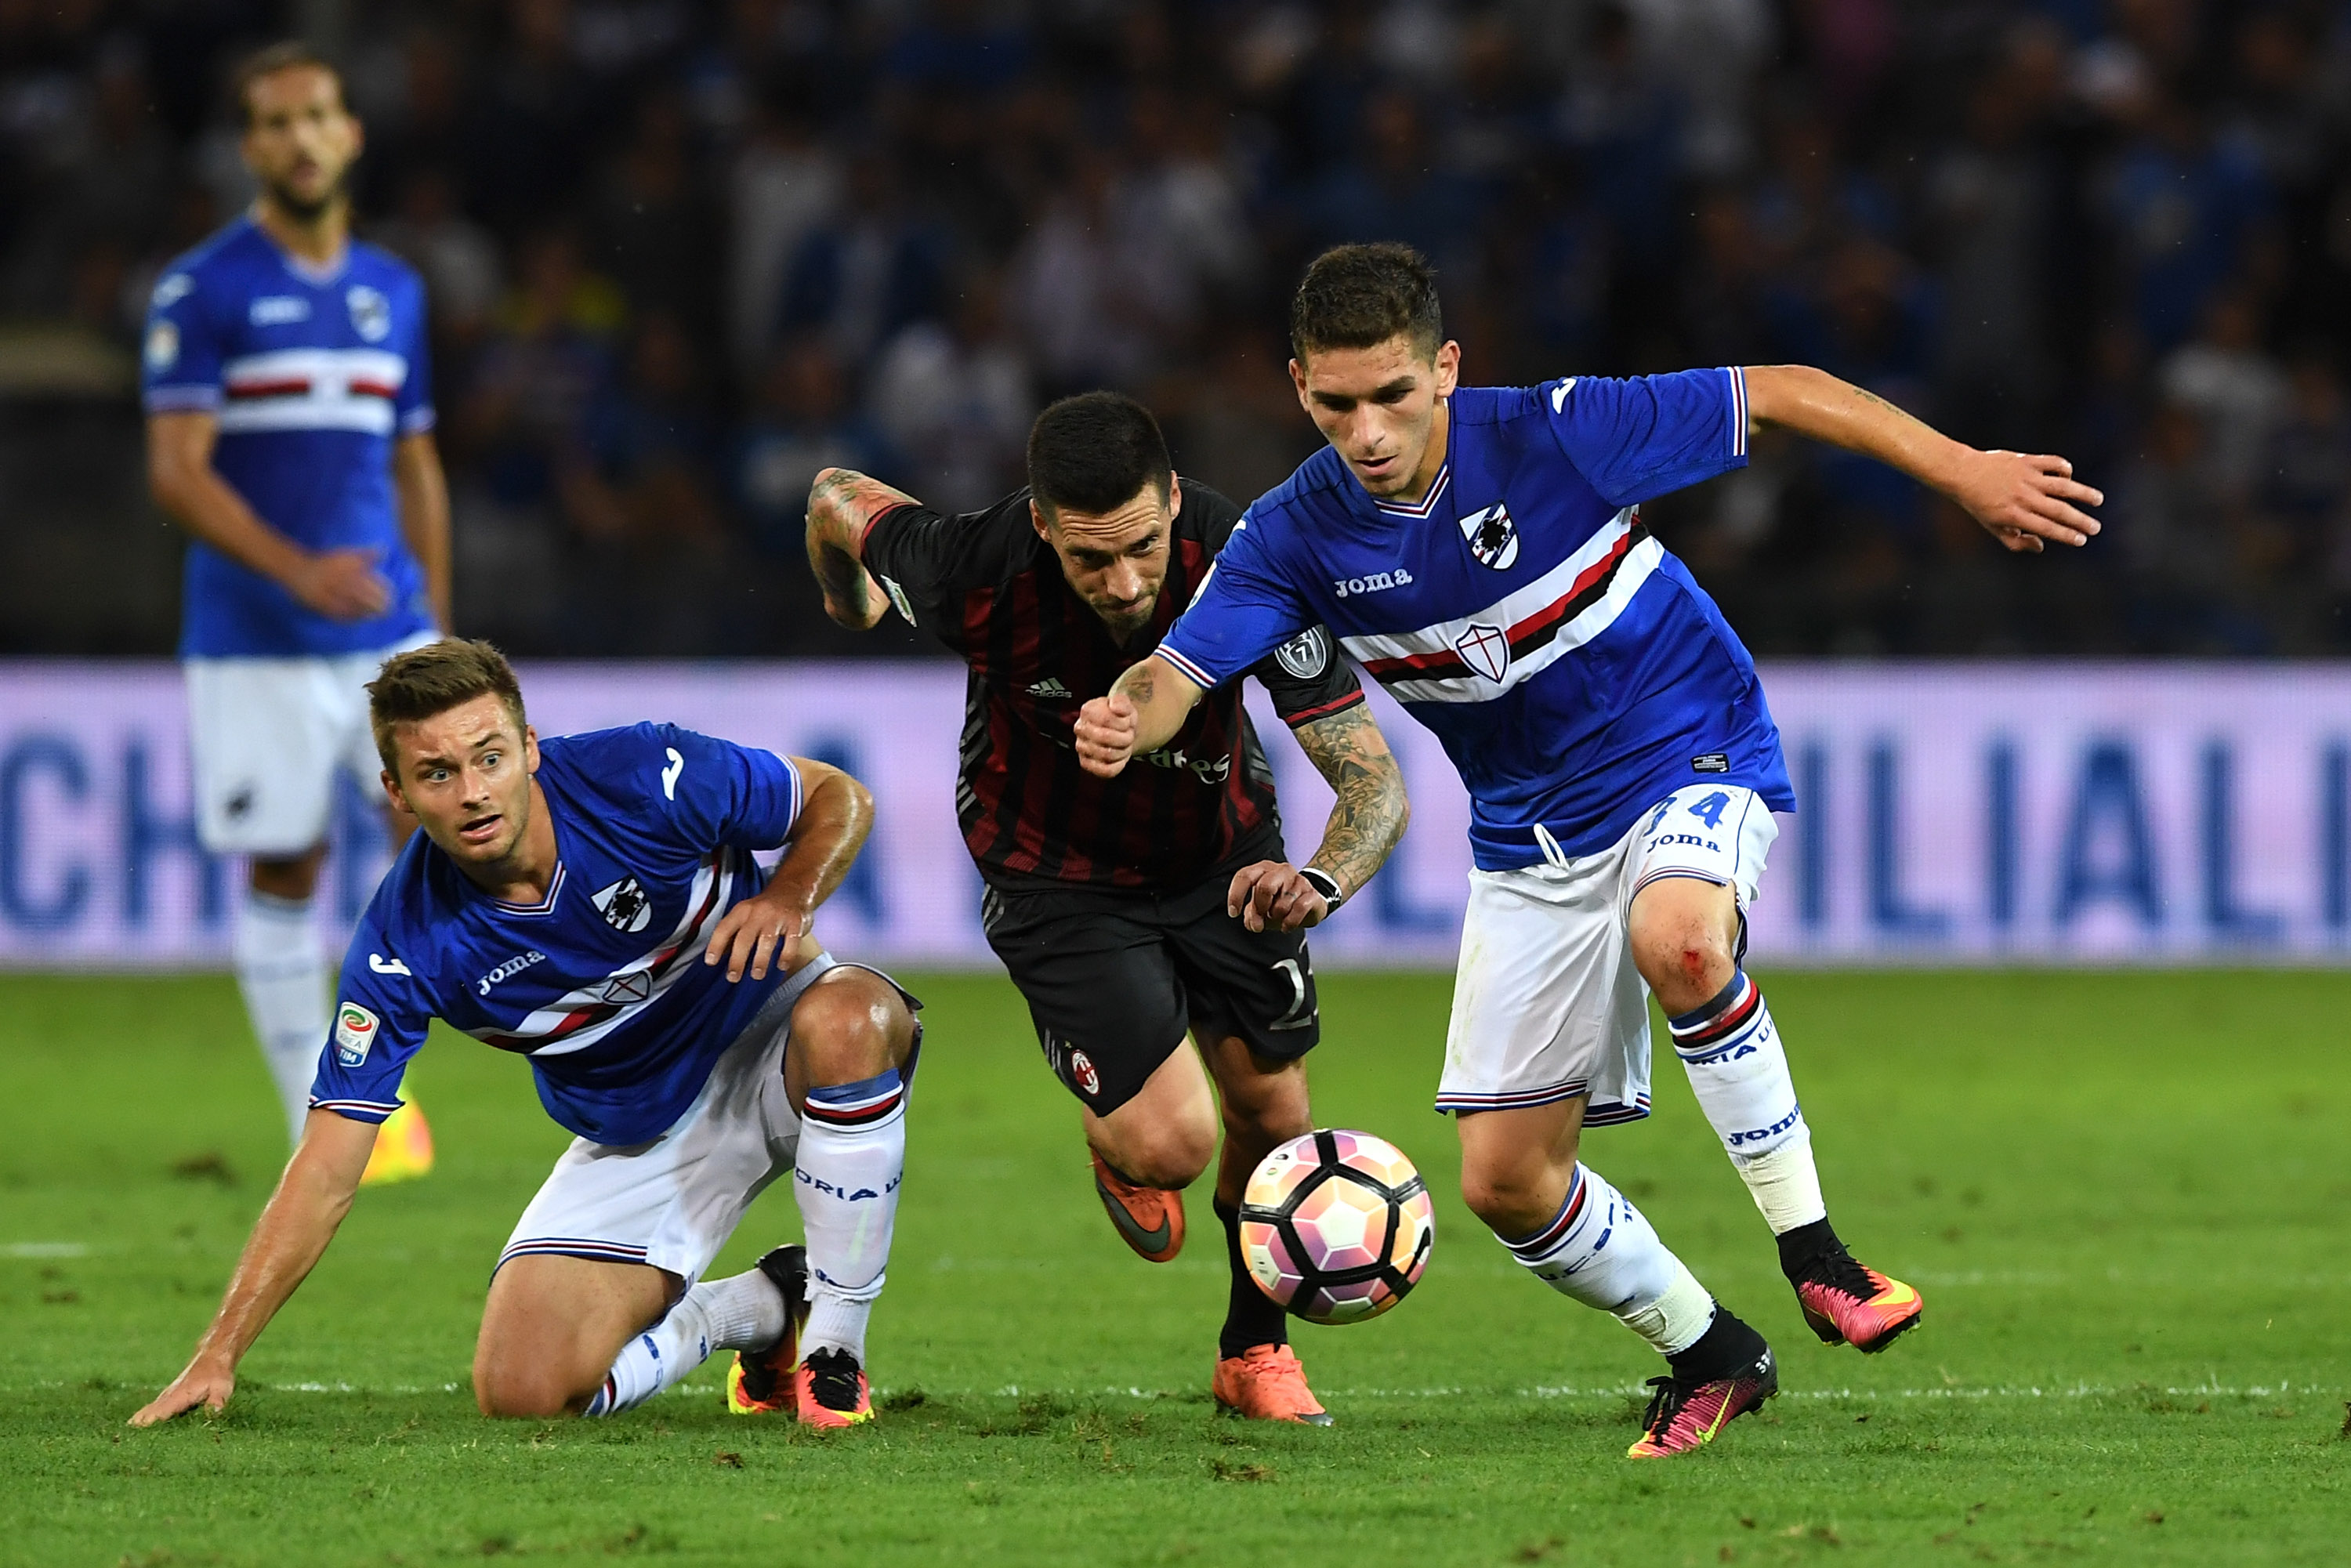 GENOA, ITALY - SEPTEMBER 16: Lucas Sebastian Torreira (R) of UC Sampdoria in action against Jose Sosa of AC Milan during the Serie A match between UC Sampdoria and AC Milan at Stadio Luigi Ferraris on September 16, 2016 in Genoa, Italy. (Photo by Valerio Pennicino/Getty Images)